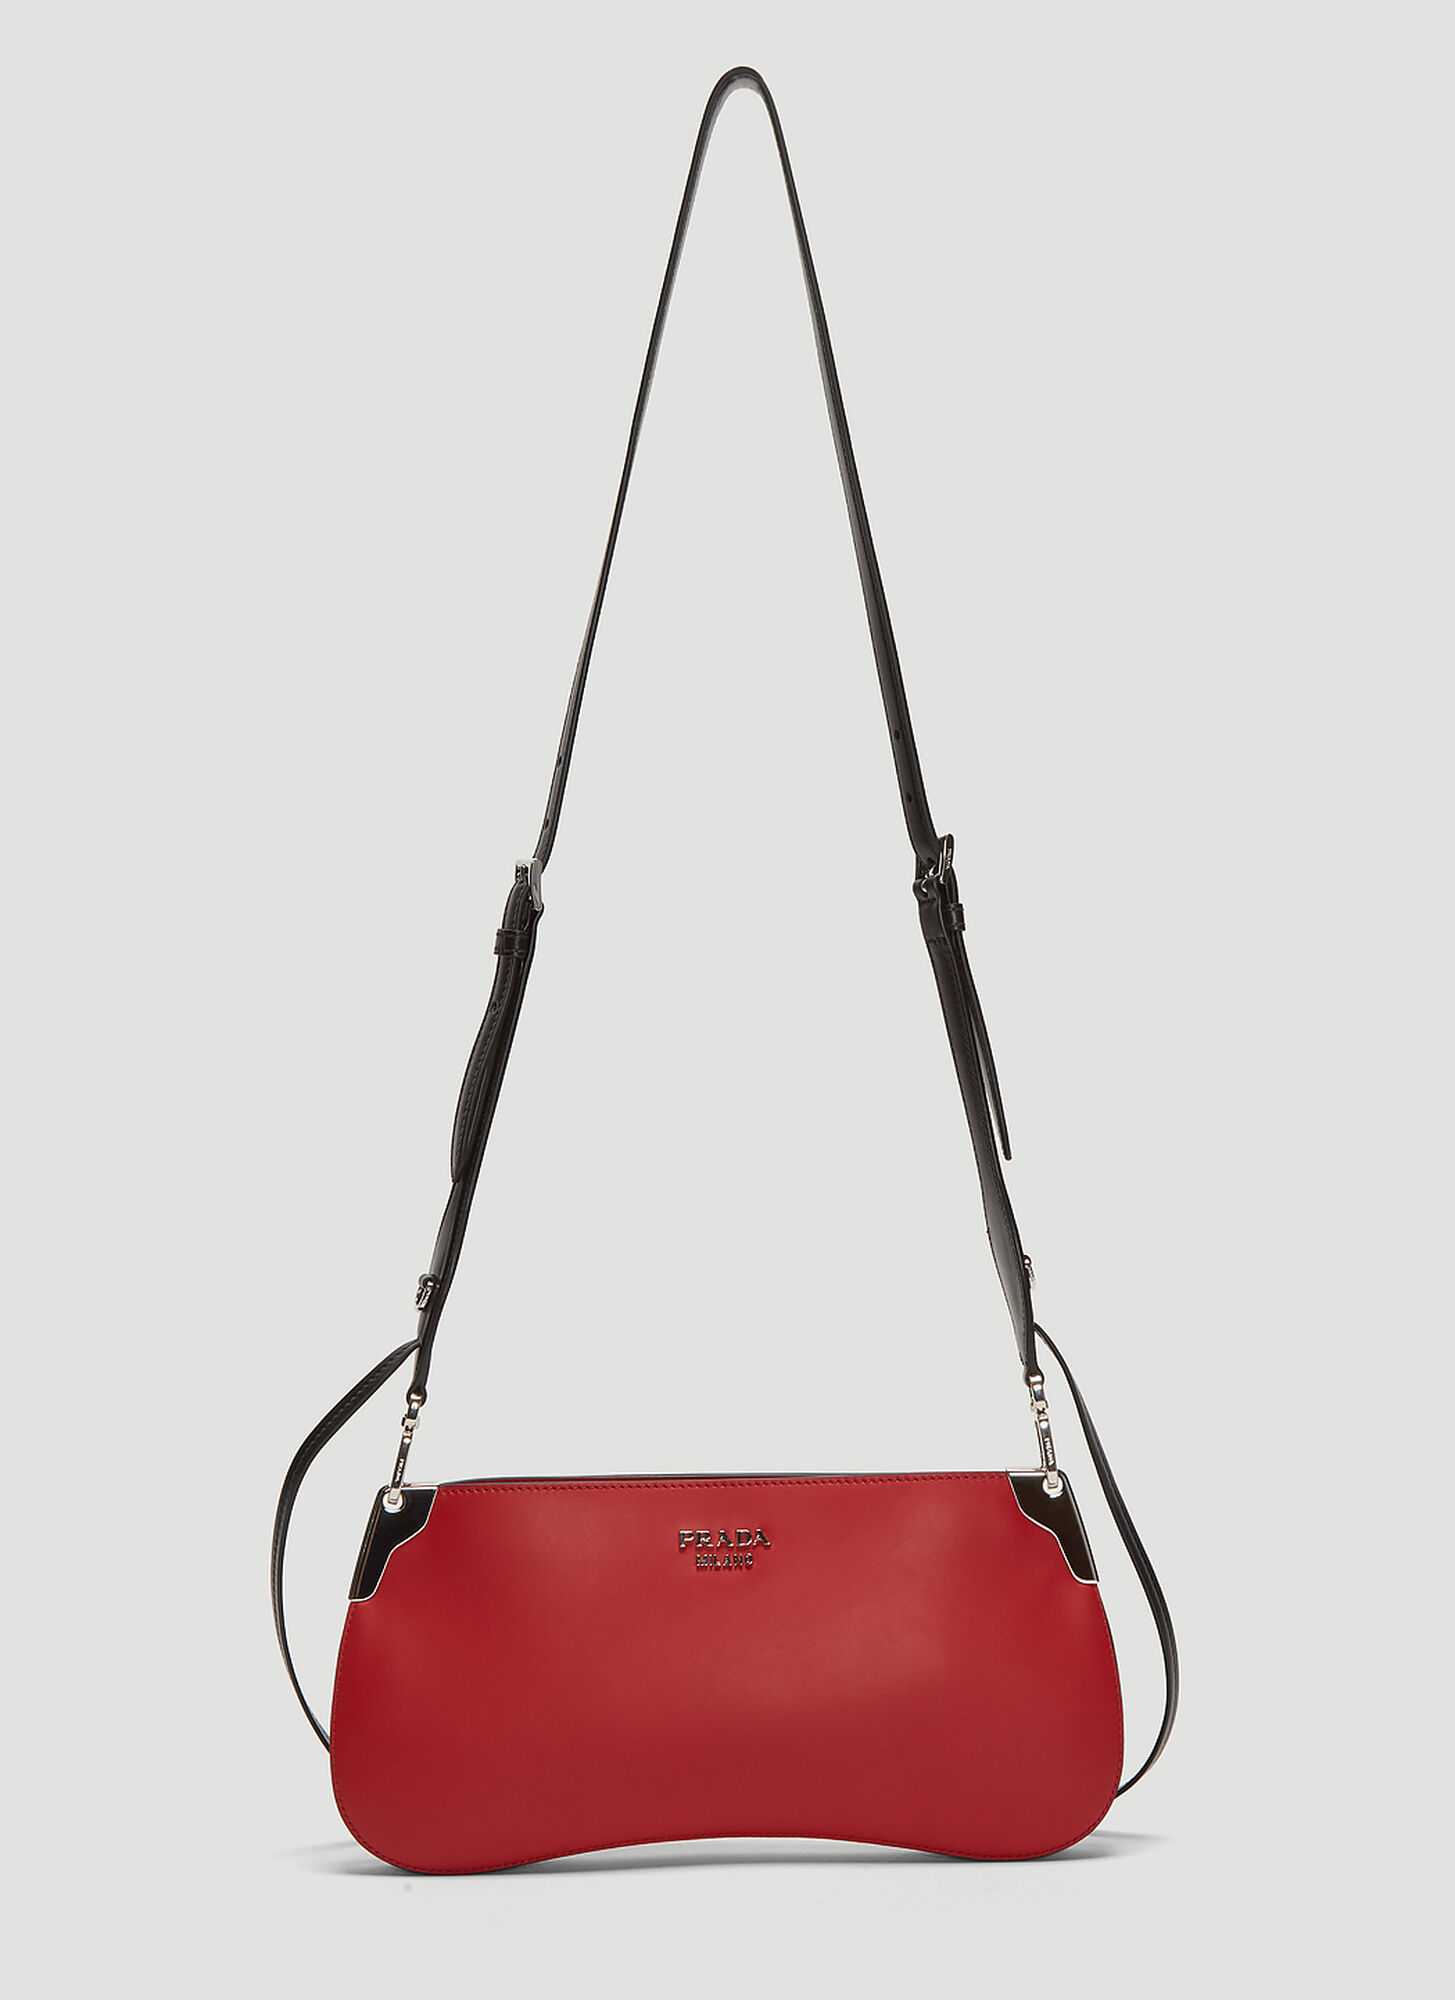 Prada Small Sidonie Saddle Bag in Red